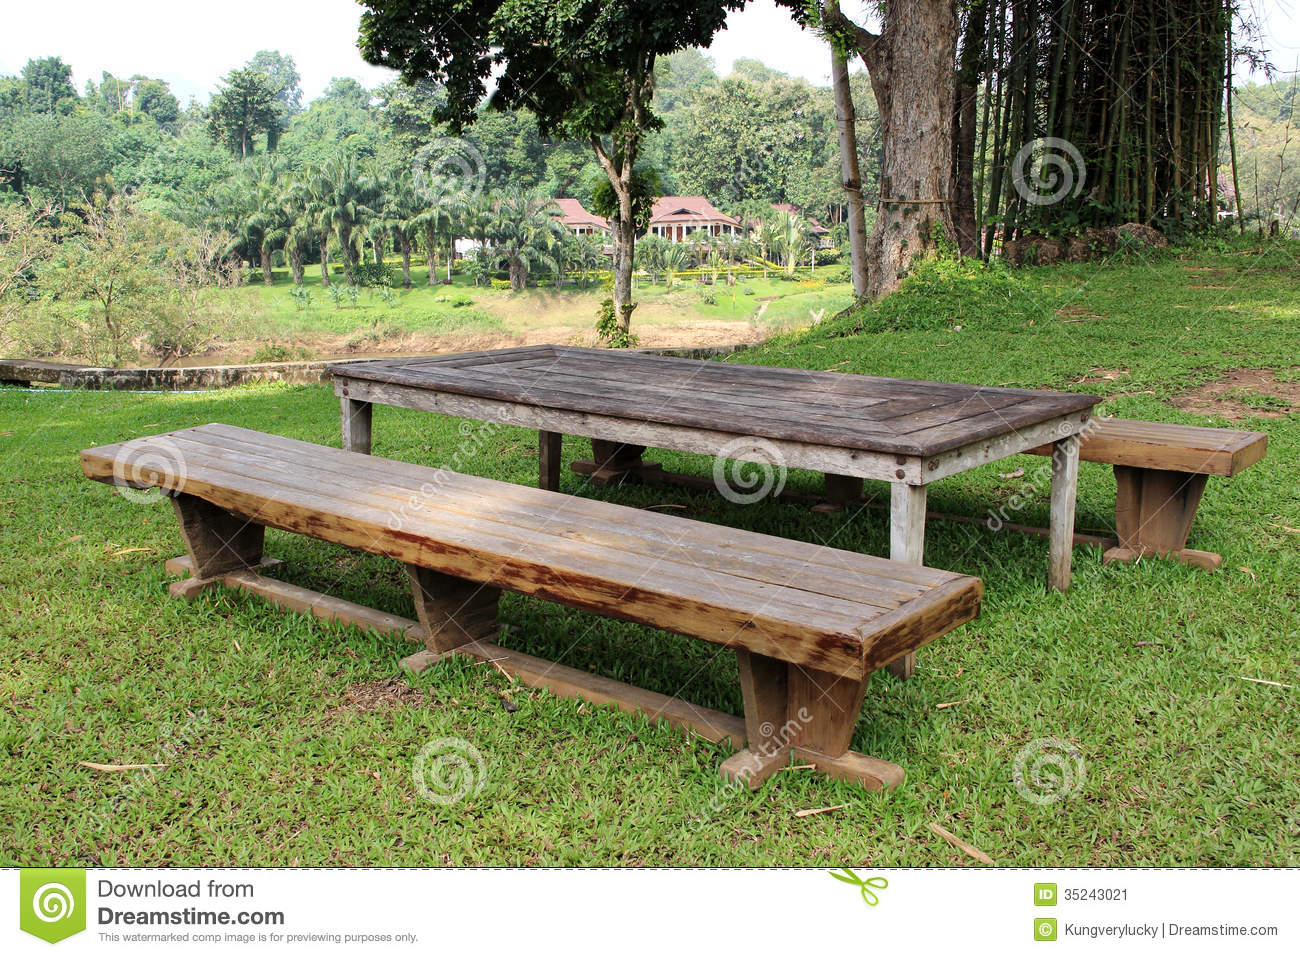 Wooden furniture thai style stock image image of for Outdoor furniture thailand